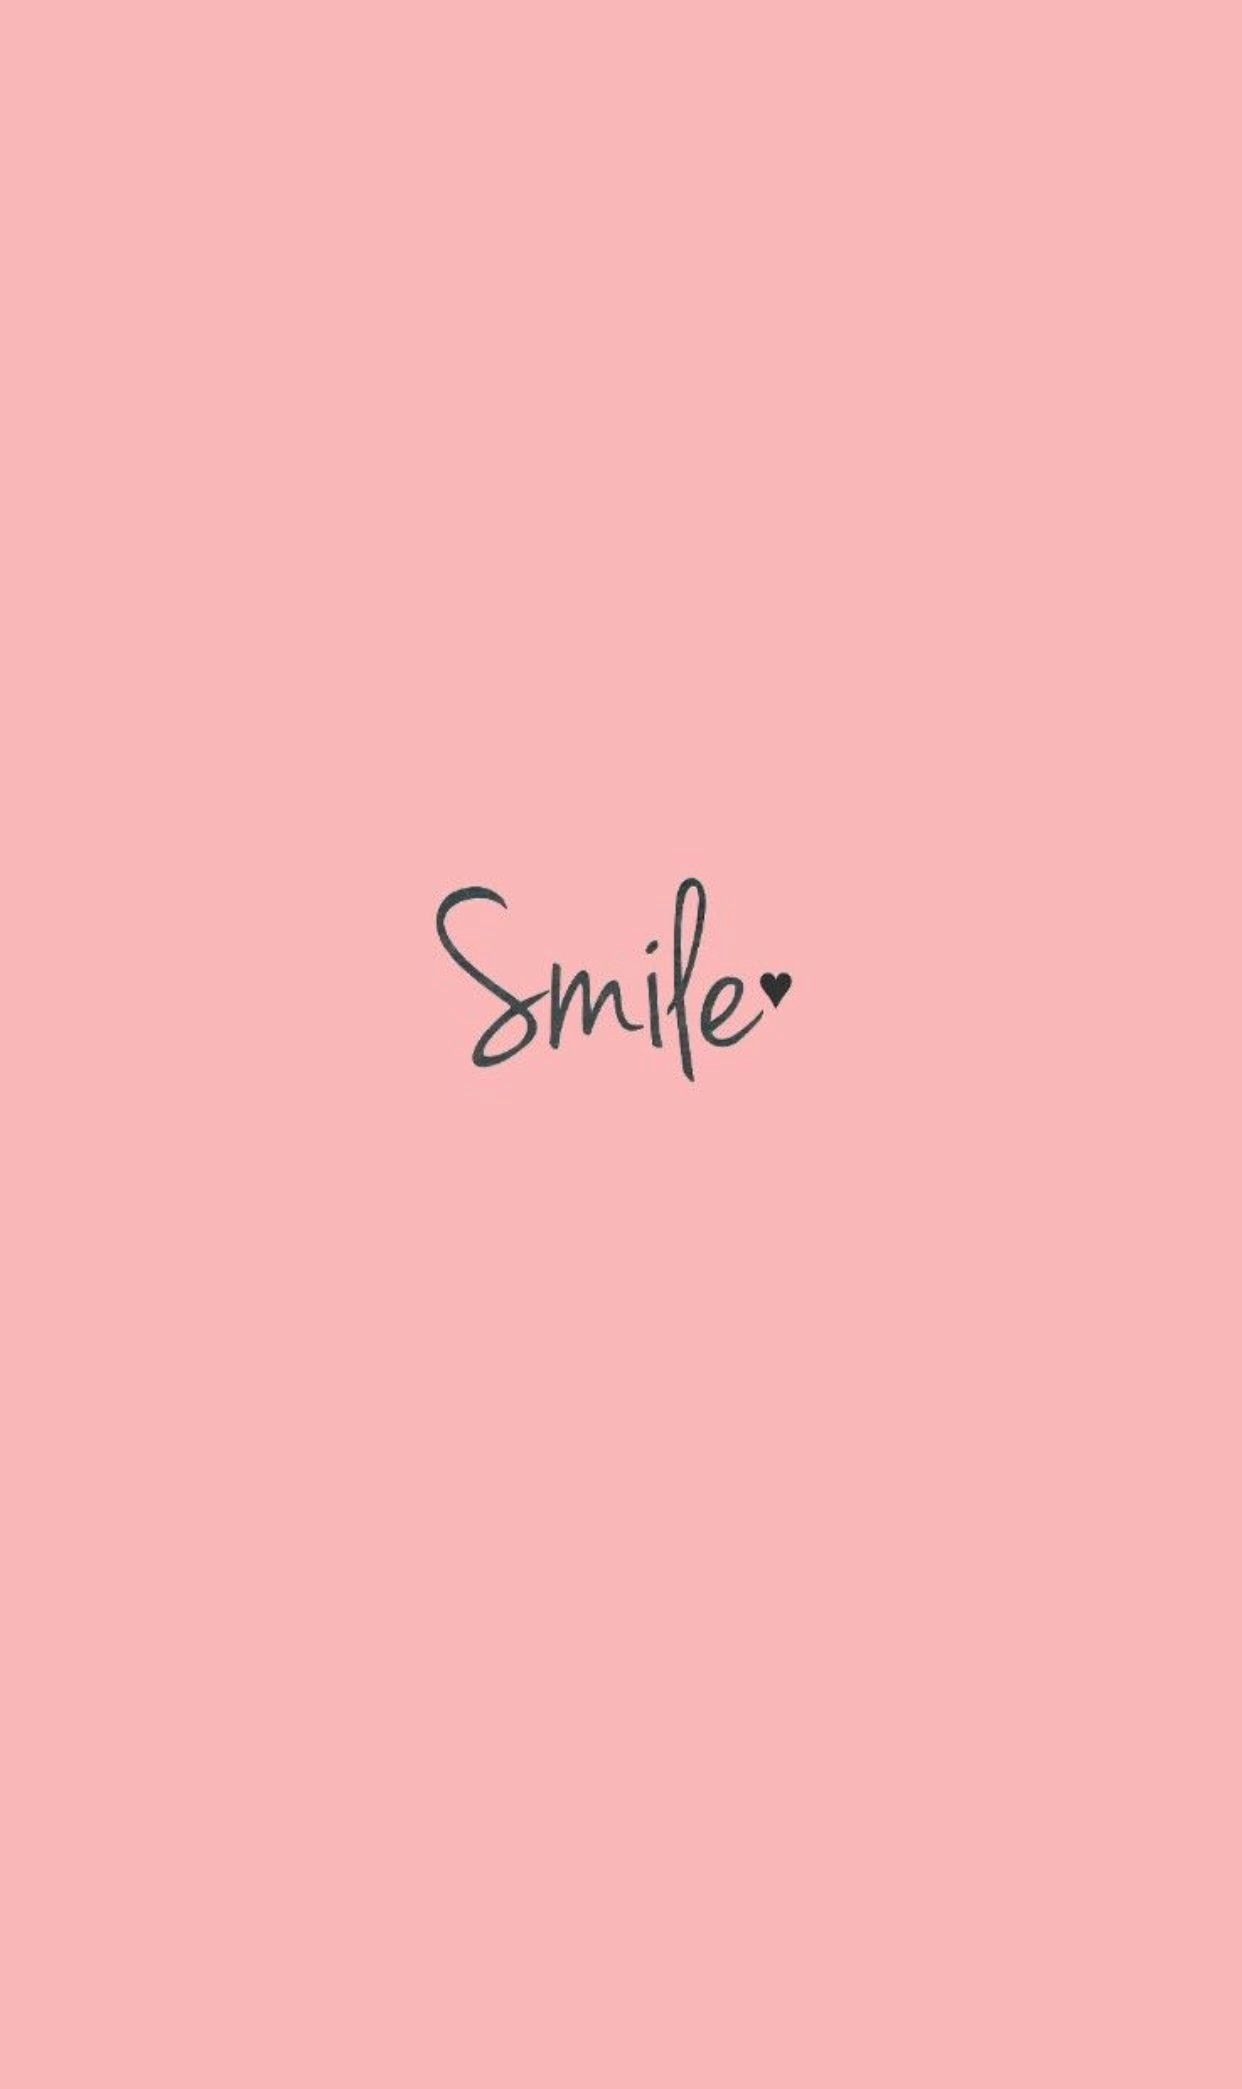 Best Vsco Girl Smile Text Wallpaper Wallpaper Coolphonewallpapers Phonewallpapers Mobilewall Apple Watch Wallpaper Cute Wallpapers Cute Wallpaper For Phone